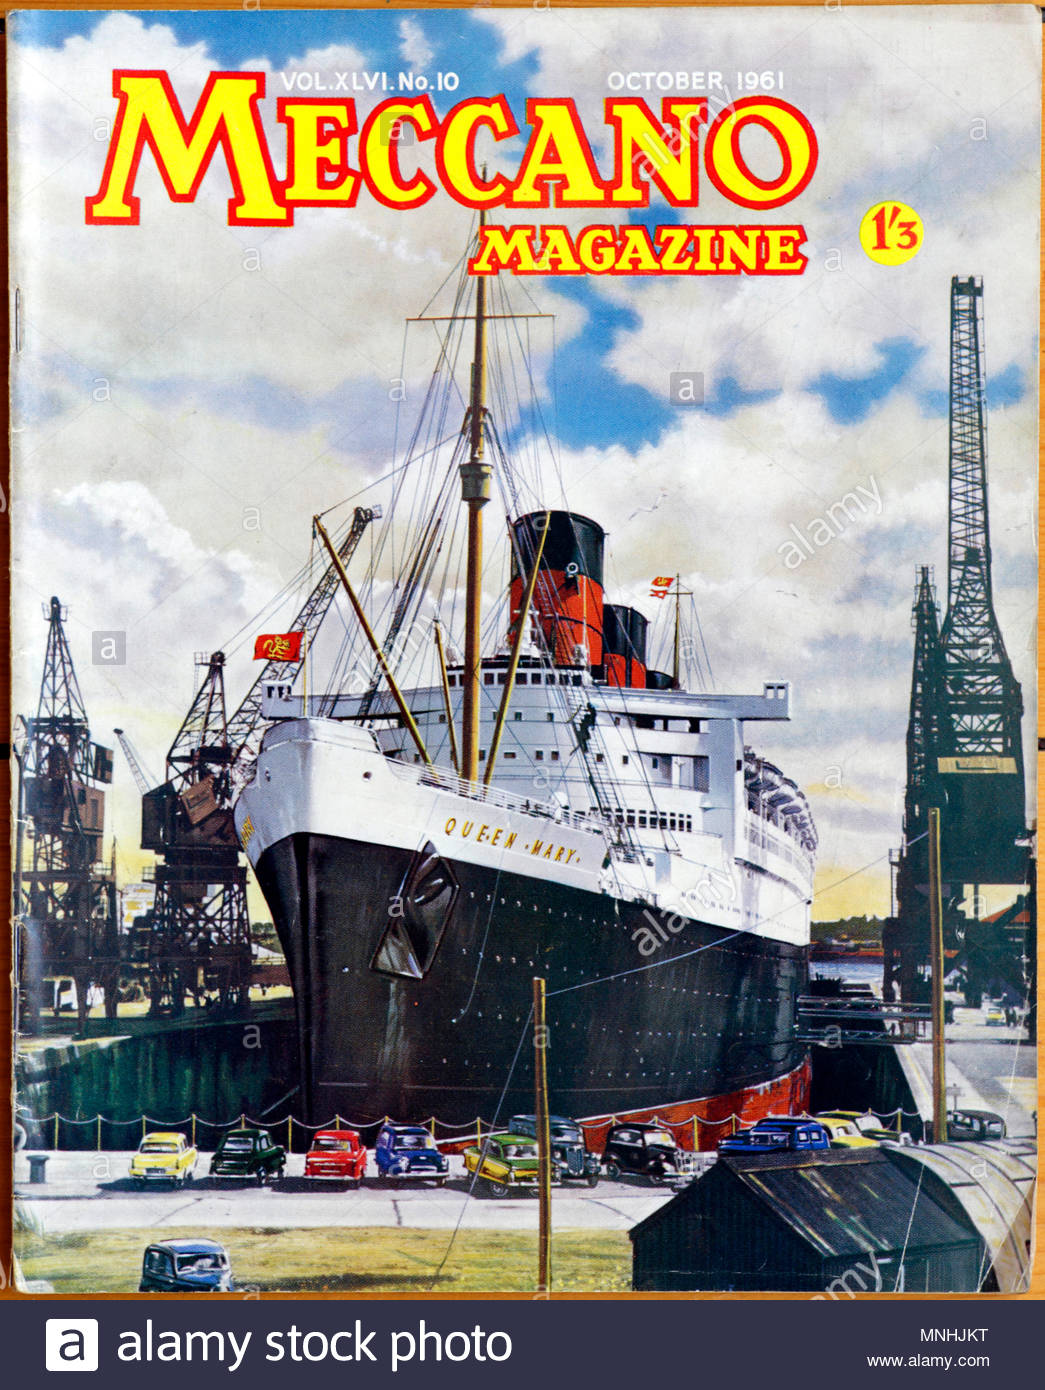 Meccano Monthly Magazine, October 1961 - Stock Image